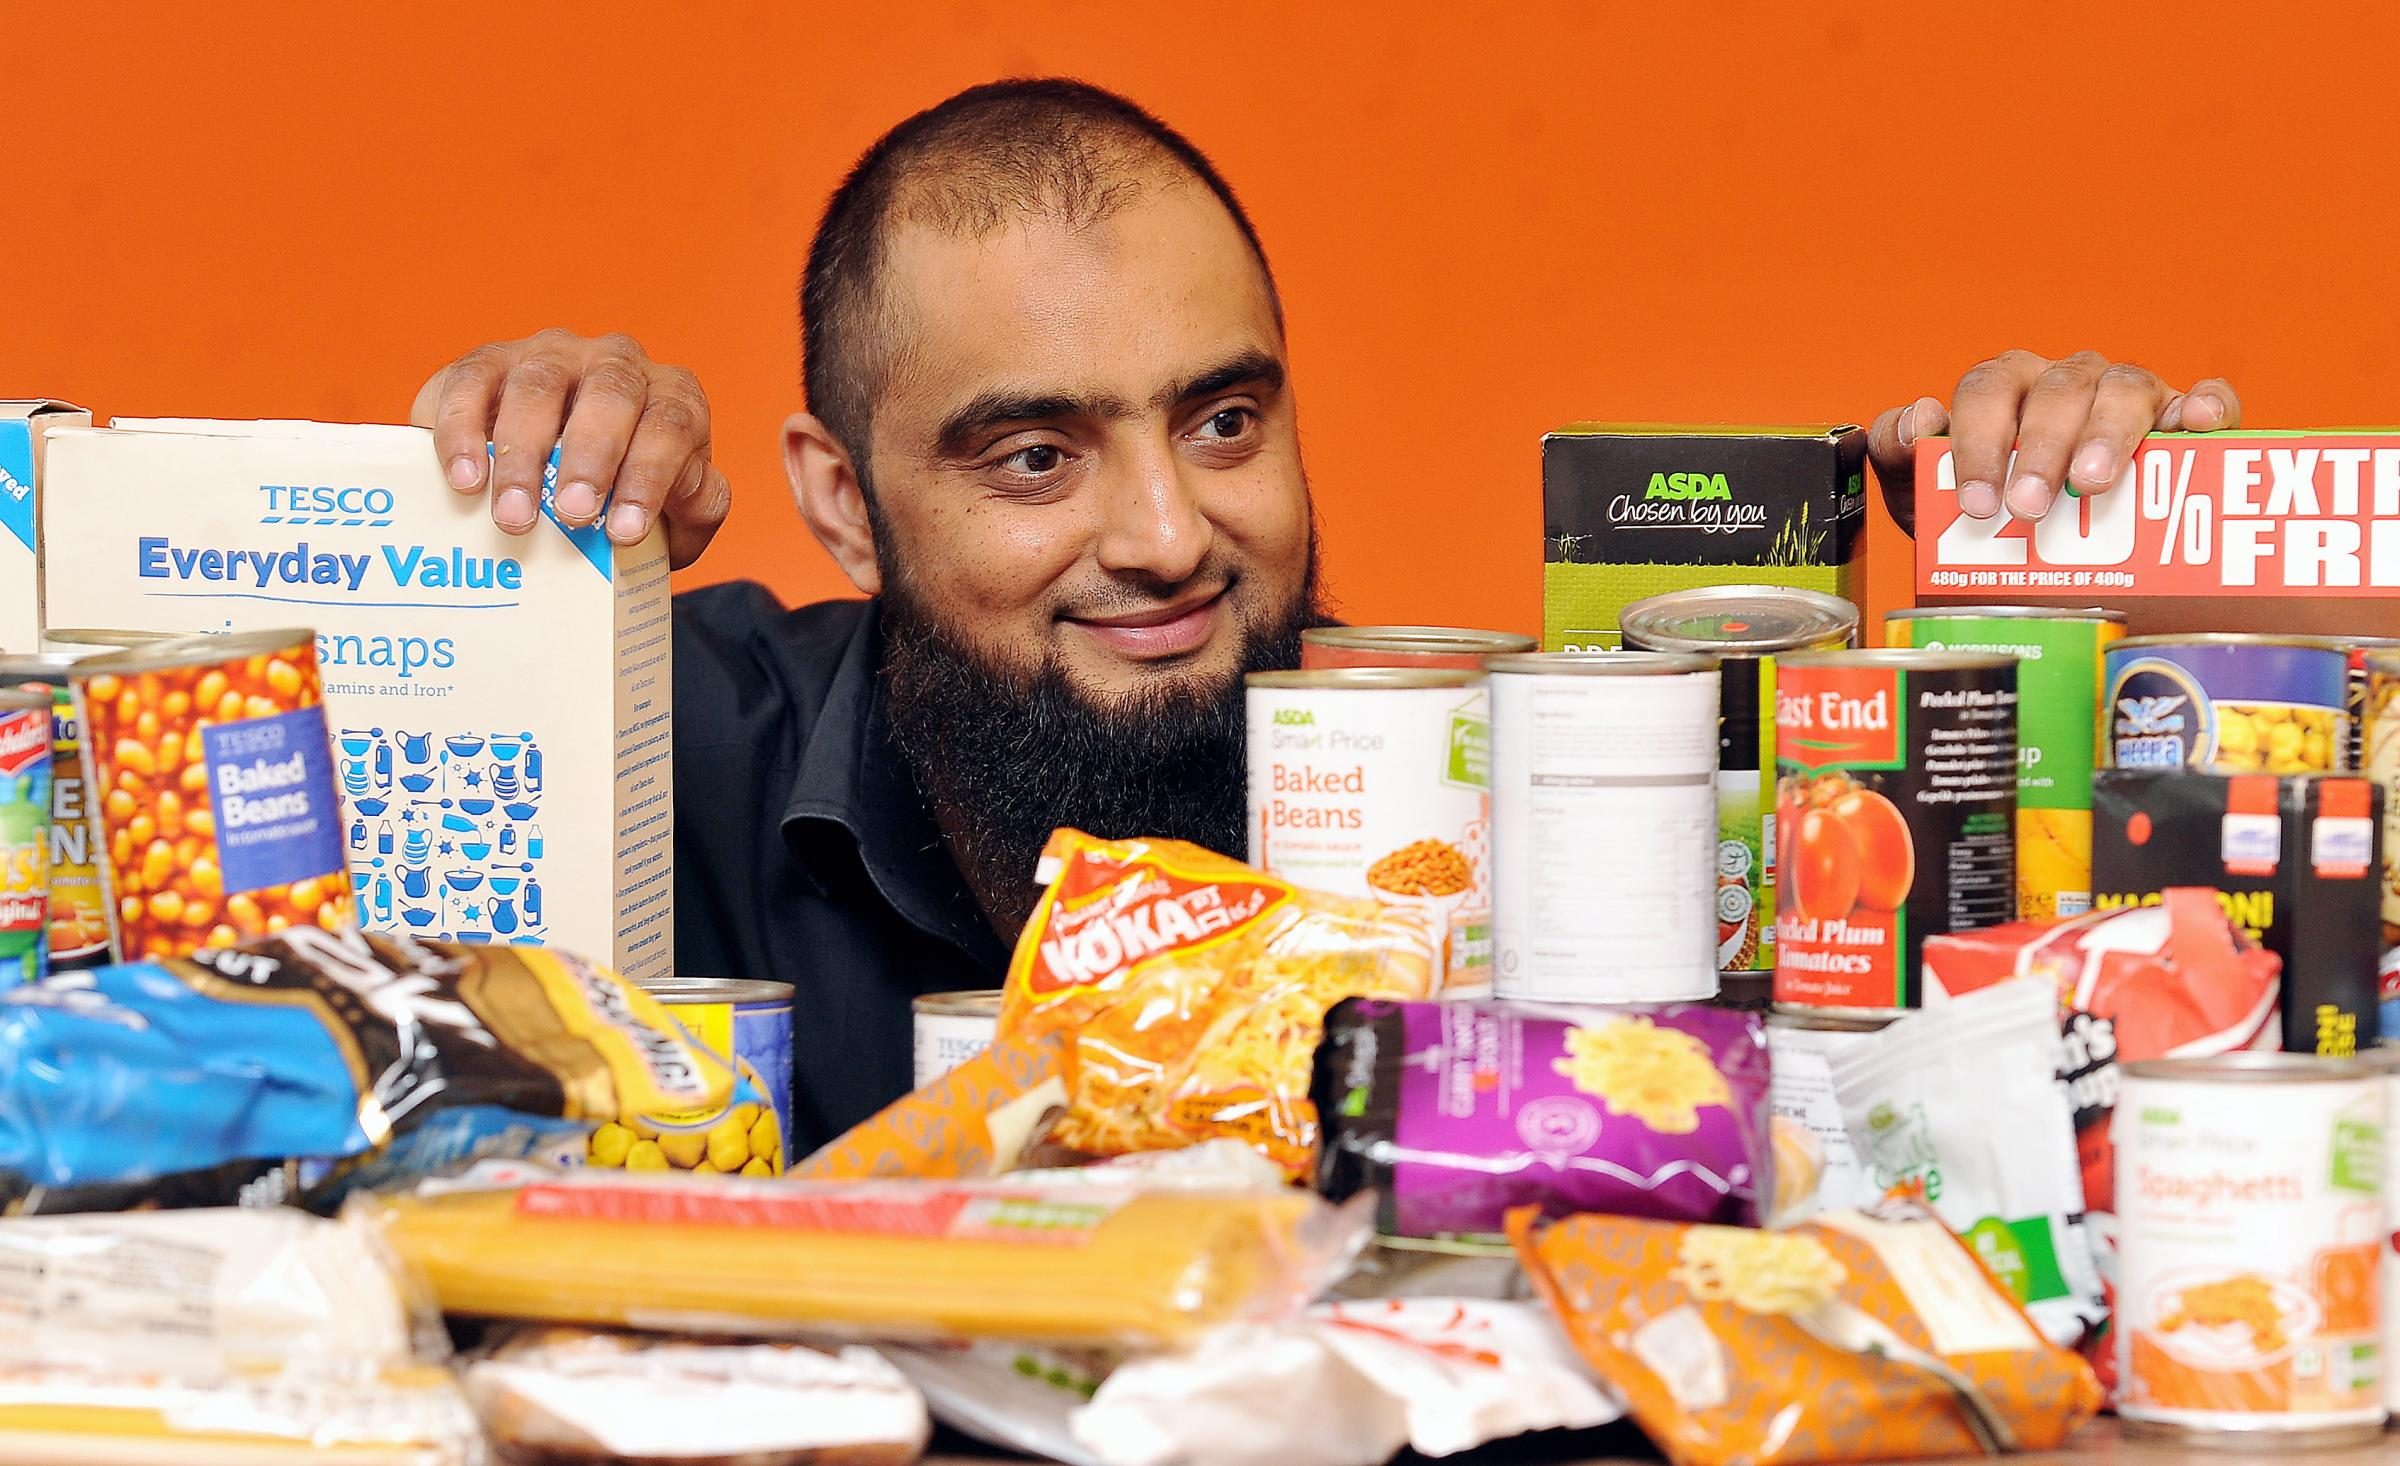 HOPE: Founder and Board Member of Intouch Foundation food bank, Osman Gondal, with some of the donated food